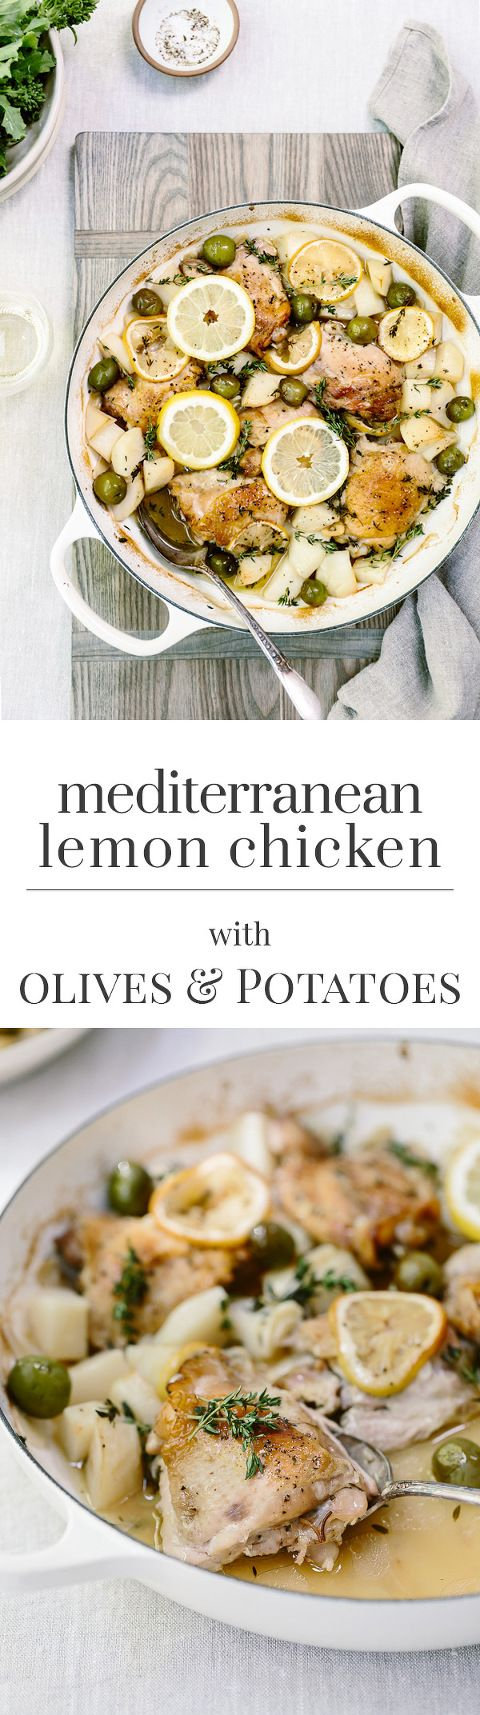 Mediterranean Lemon Chicken with Olives and Potatoes